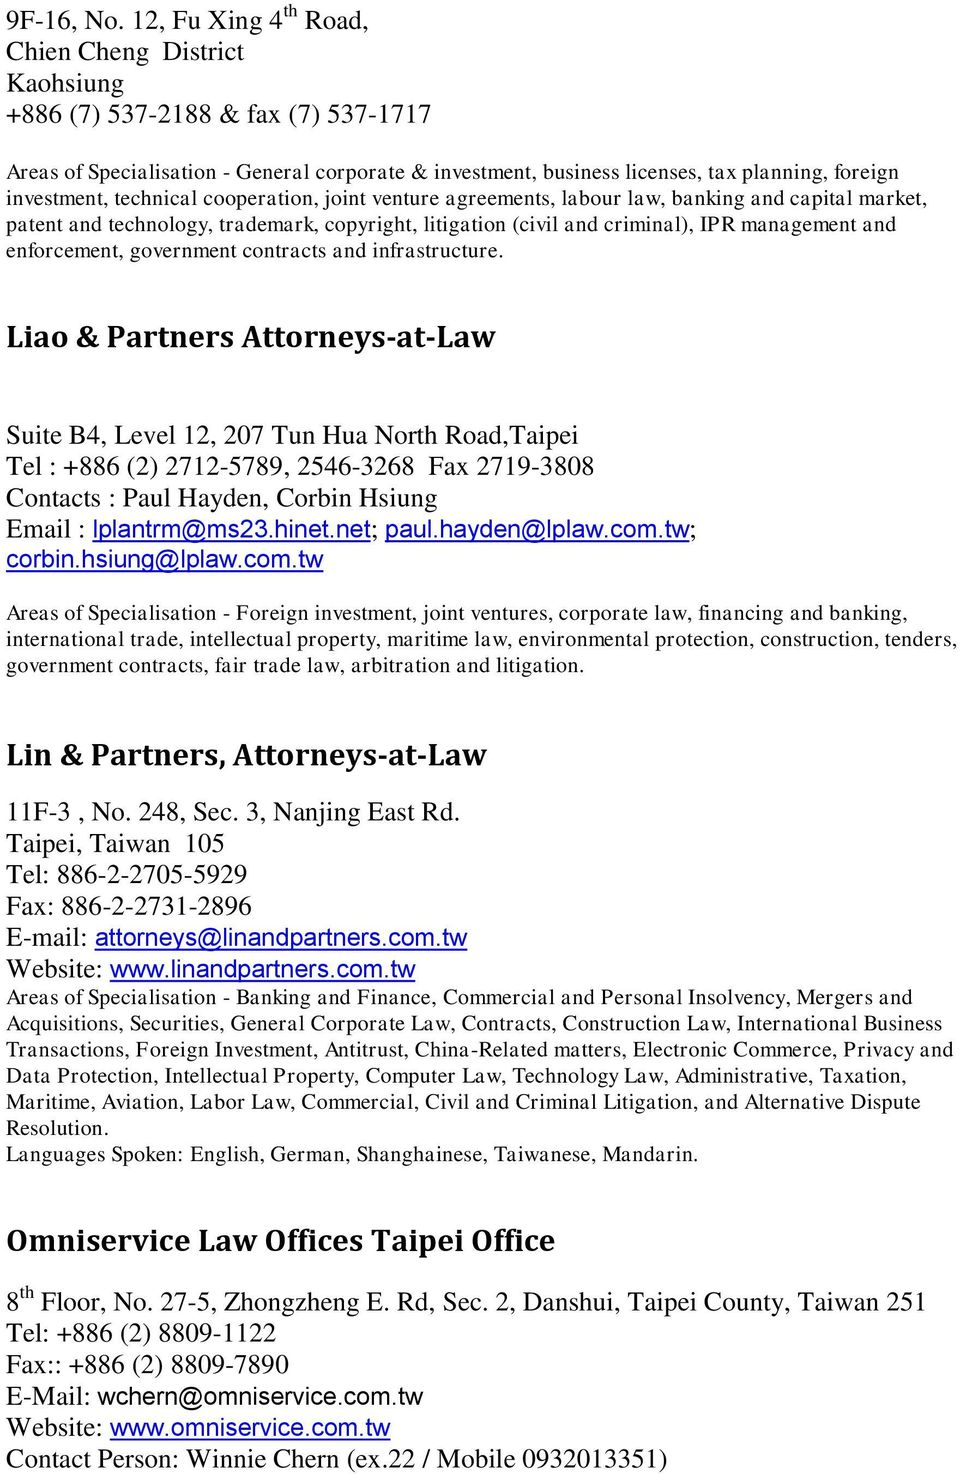 LIST OF LAWYERS AND LAW FIRMS IN TAIWAN - PDF